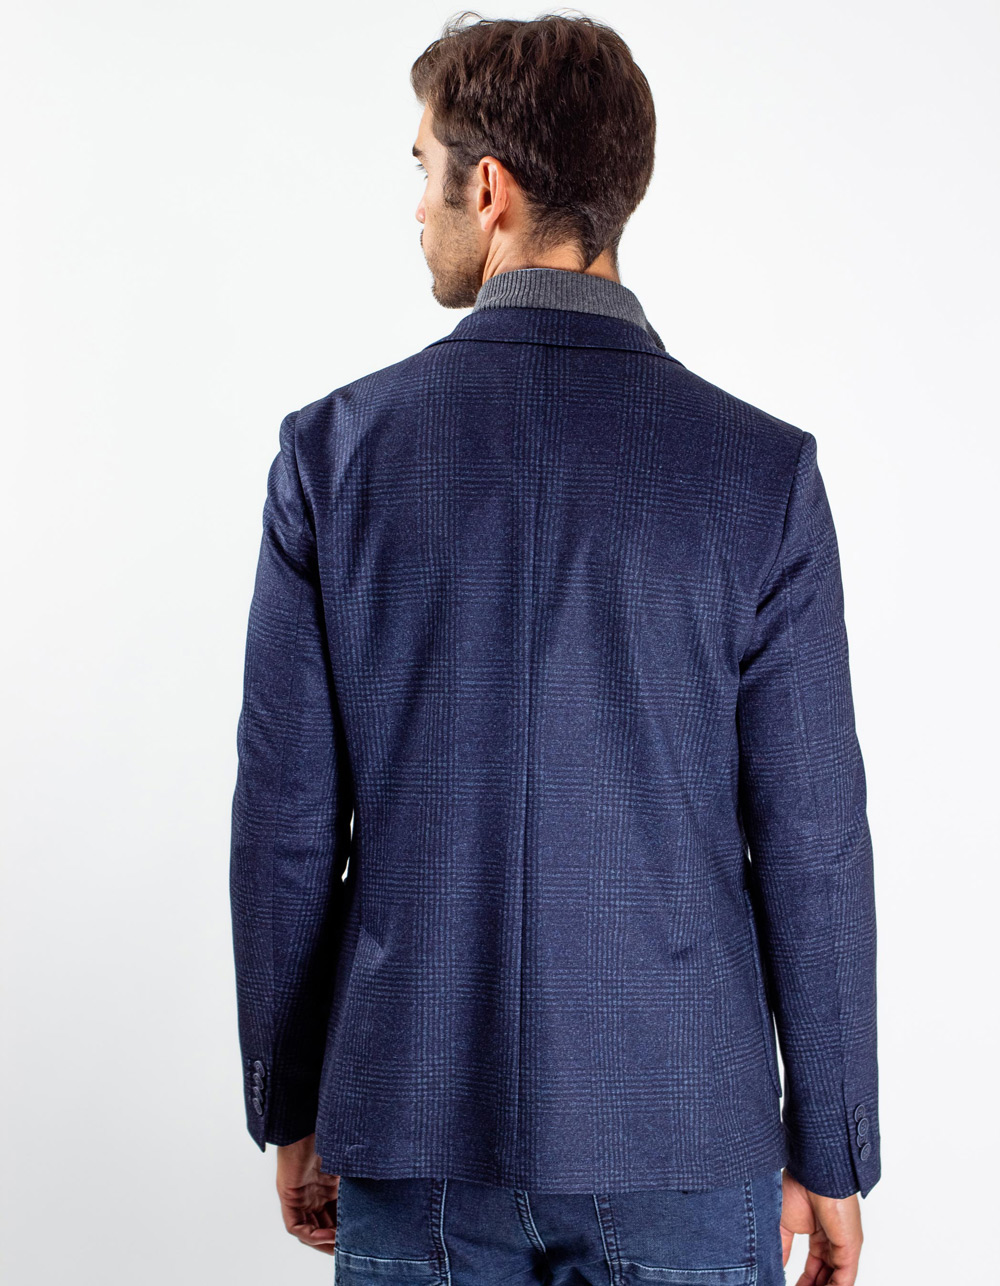 Navy blue plaid blaze - Backside